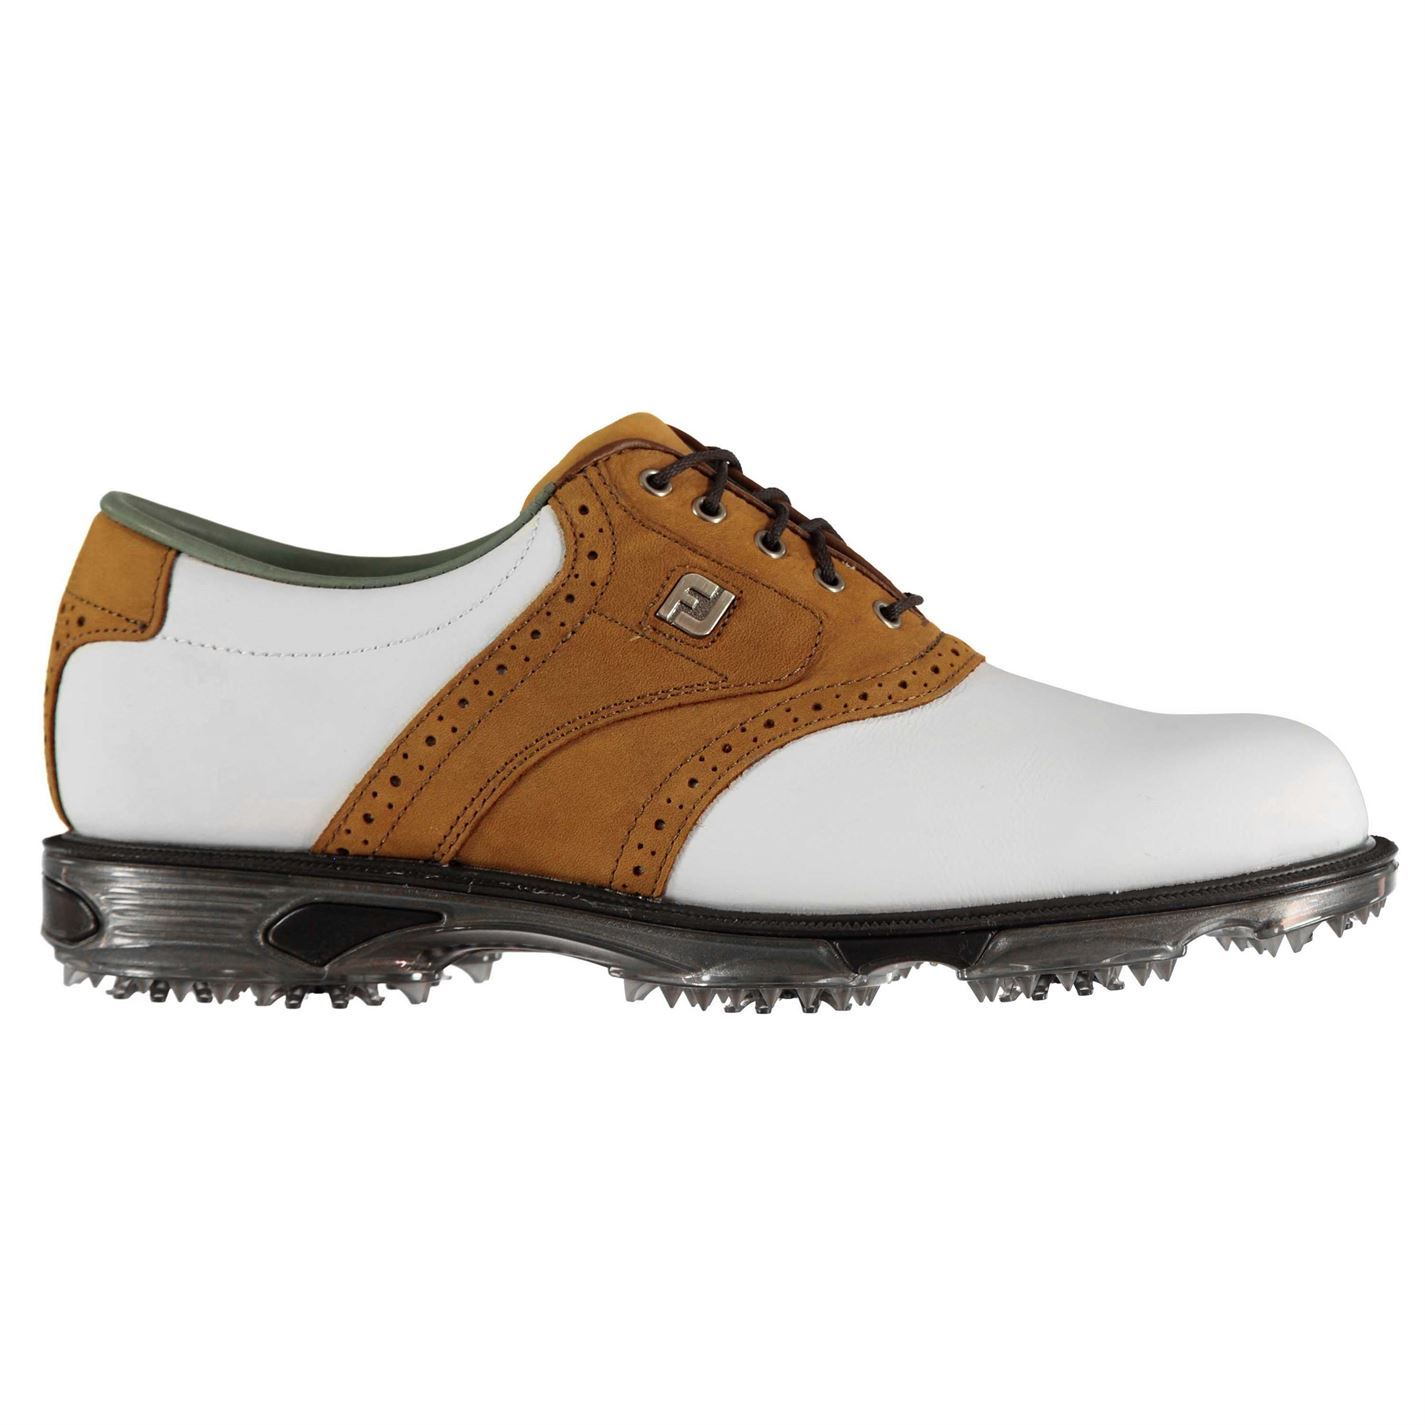 Footjoy-DryJoys-Tour-Golf-Shoes-Mens-Spikes-Footwear thumbnail 13